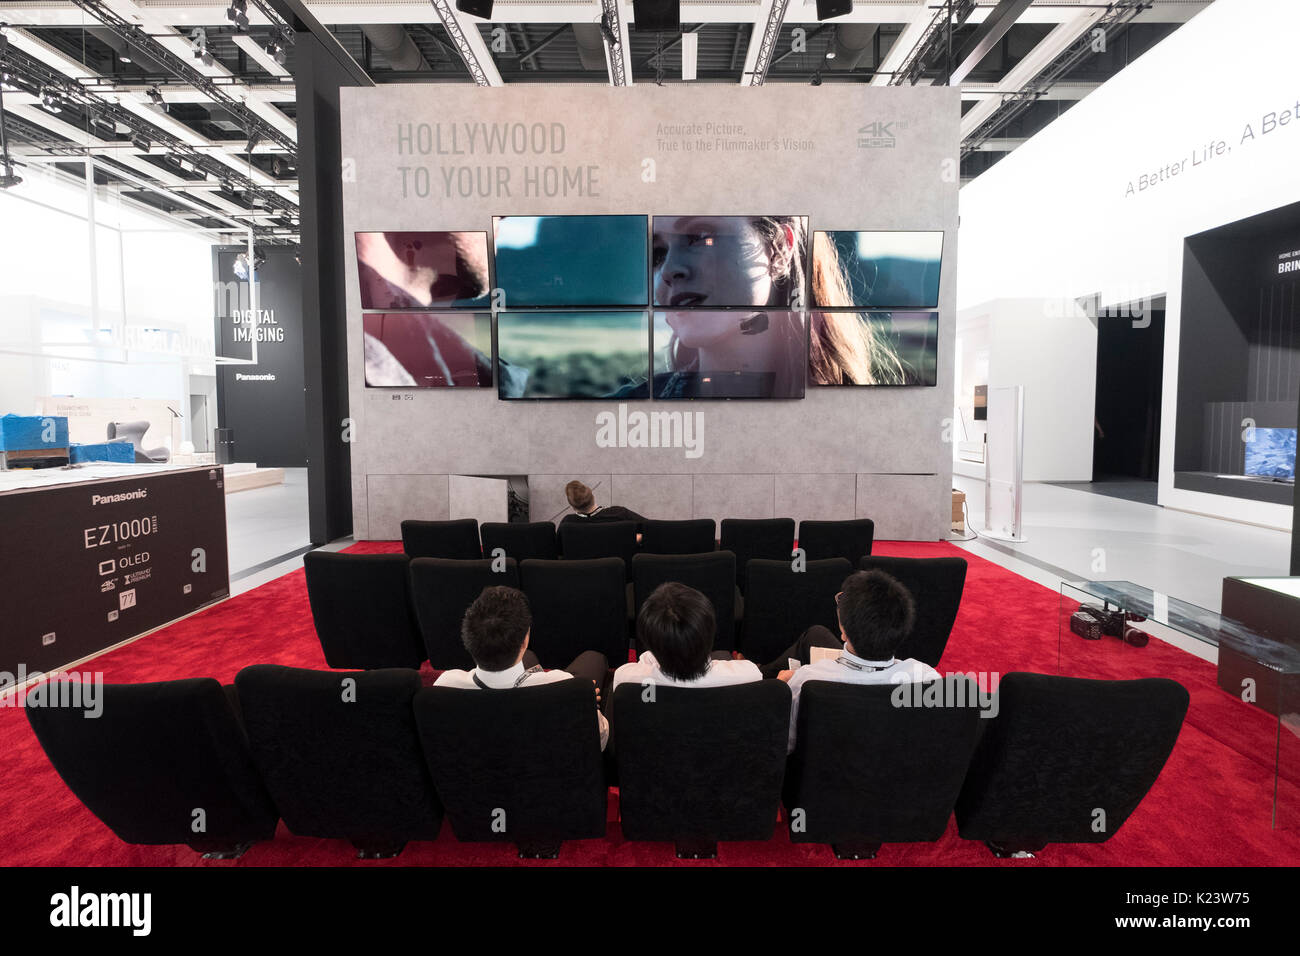 Berlin, Germany. 30th Aug, 2017. Exhibitors preparing stands prior to opening to the public on 1 Sept 2017. Home cinema exhibit demonstrating 4K televisions on Panasonic stand. IFA is one of the world's largest consumer electronics trade show. Credit: Iain Masterton/Alamy Live News - Stock Image